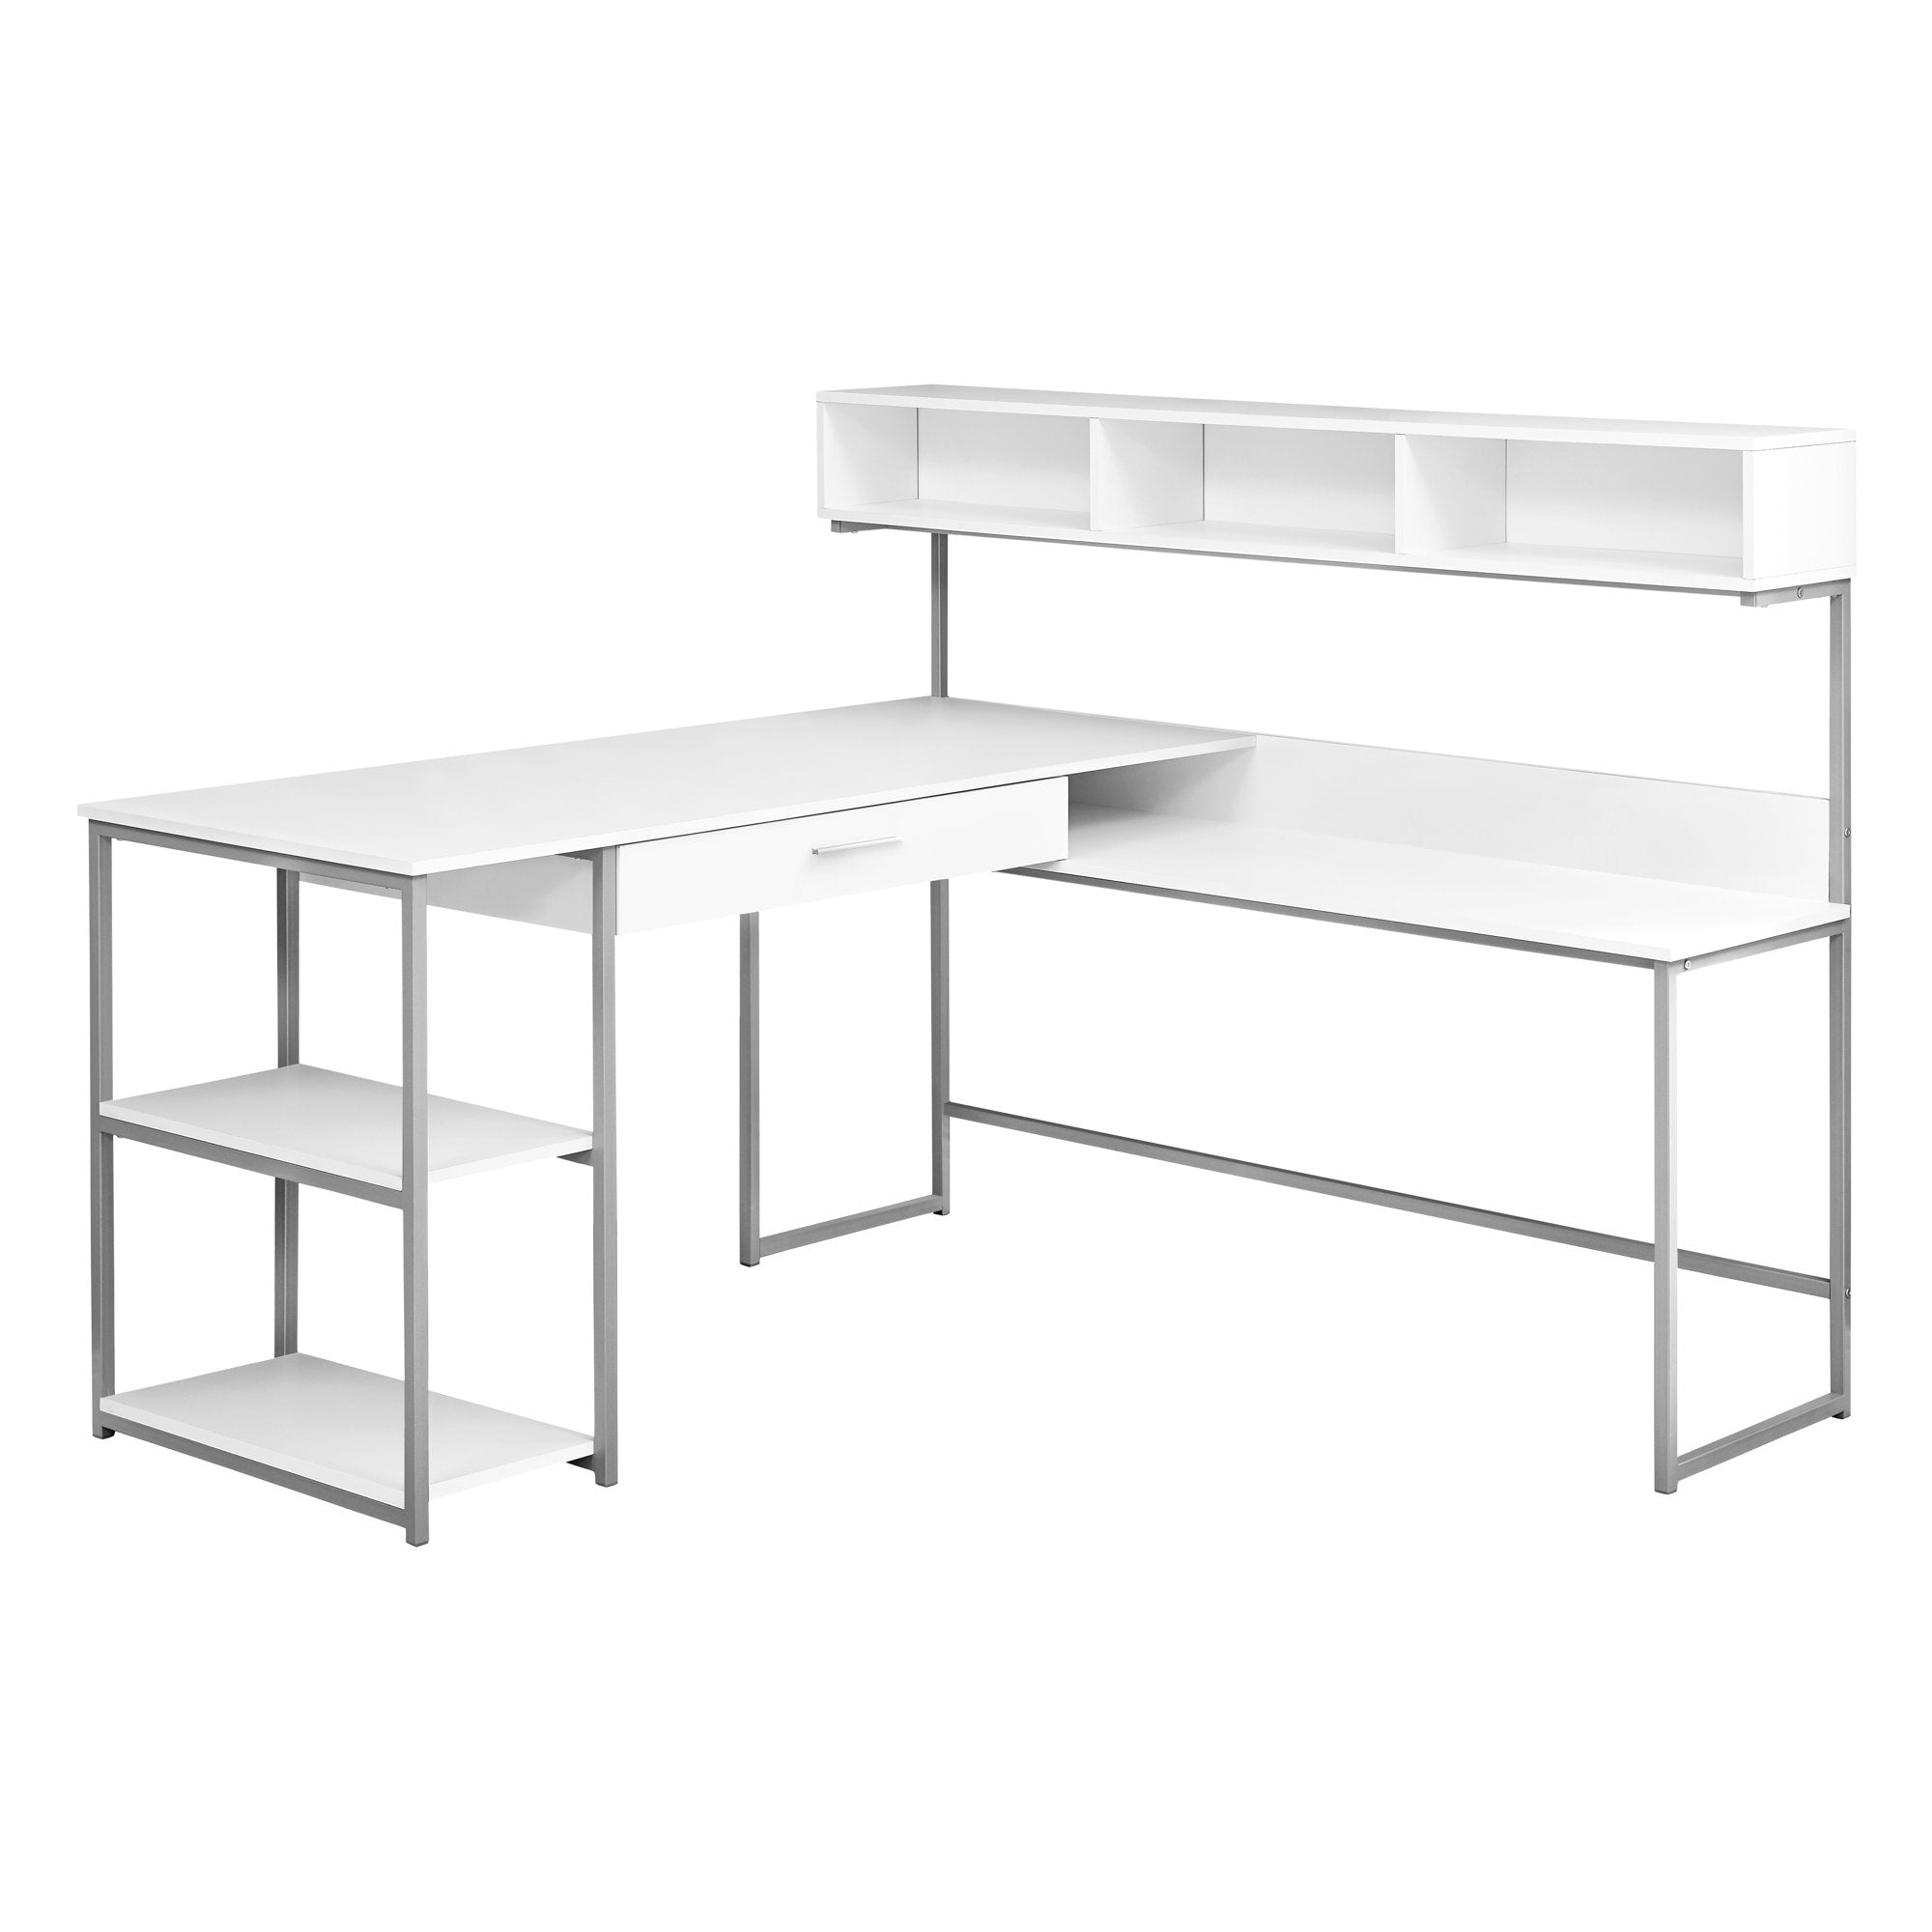 "White & Silver Metal 59"" L-Shaped Corner Desk"